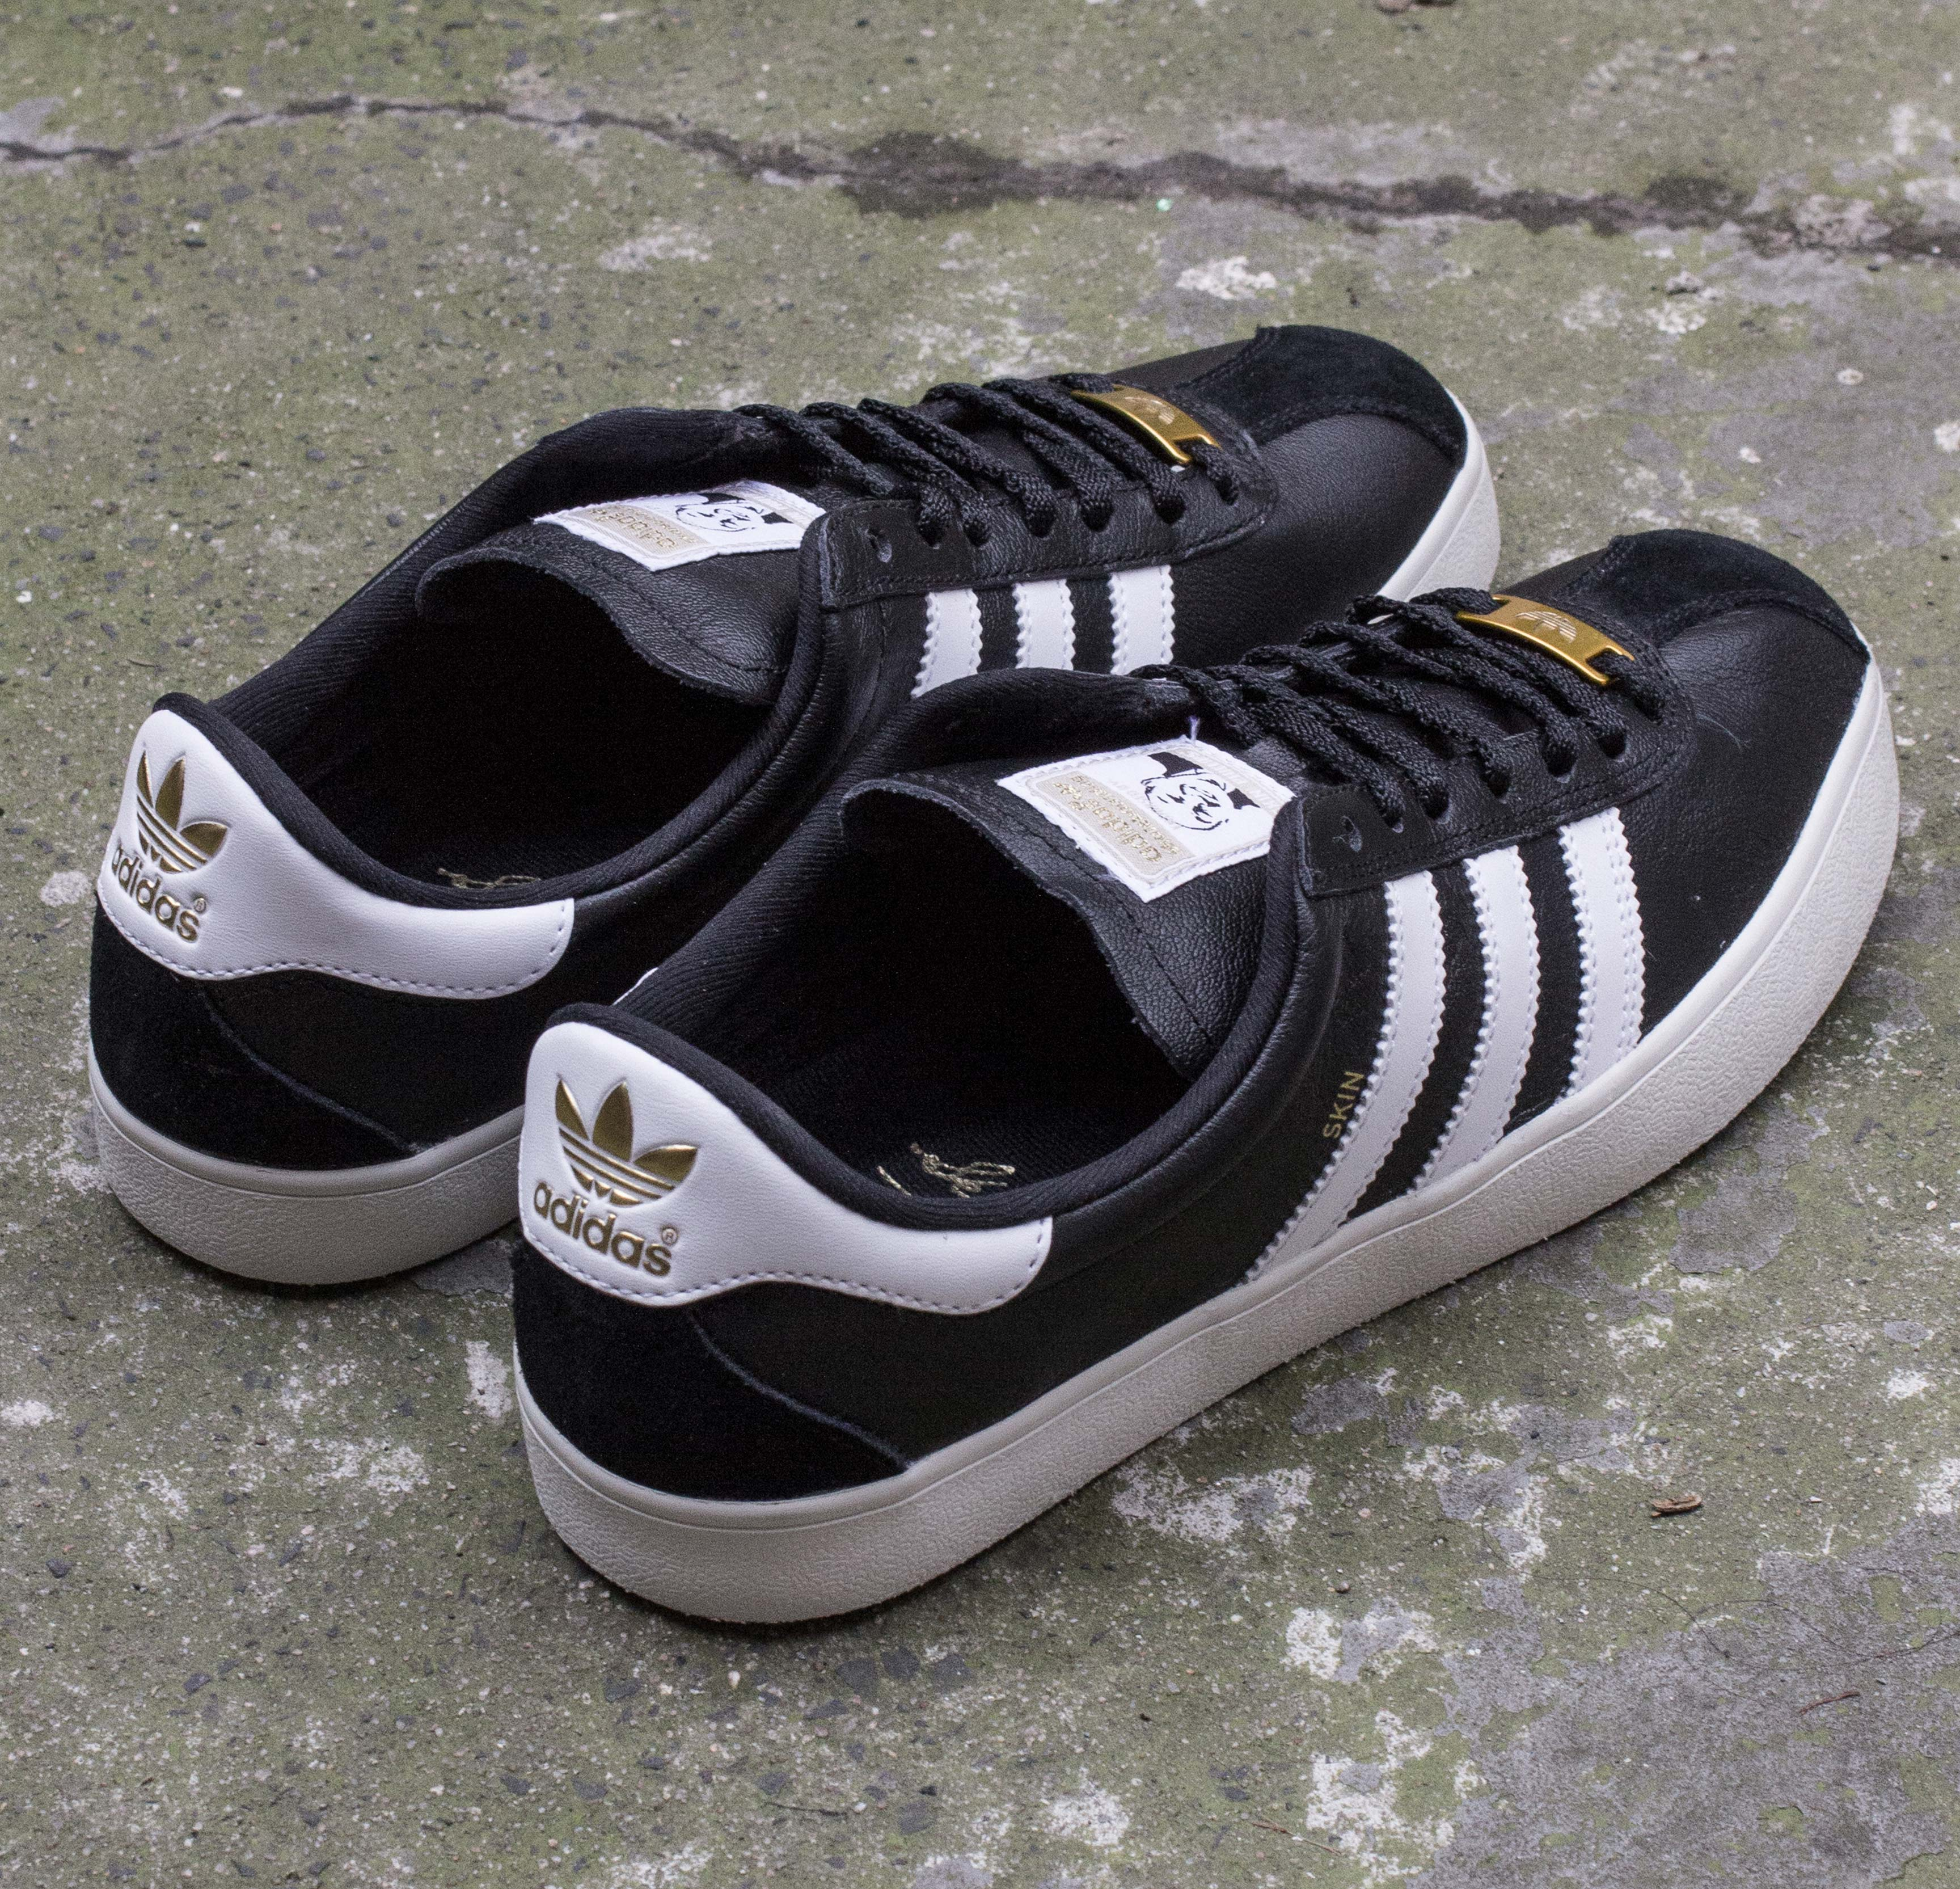 newest dbbd5 9c44d The Adidas Skate RYR (Skin Phillips) is coming on 9th of February.